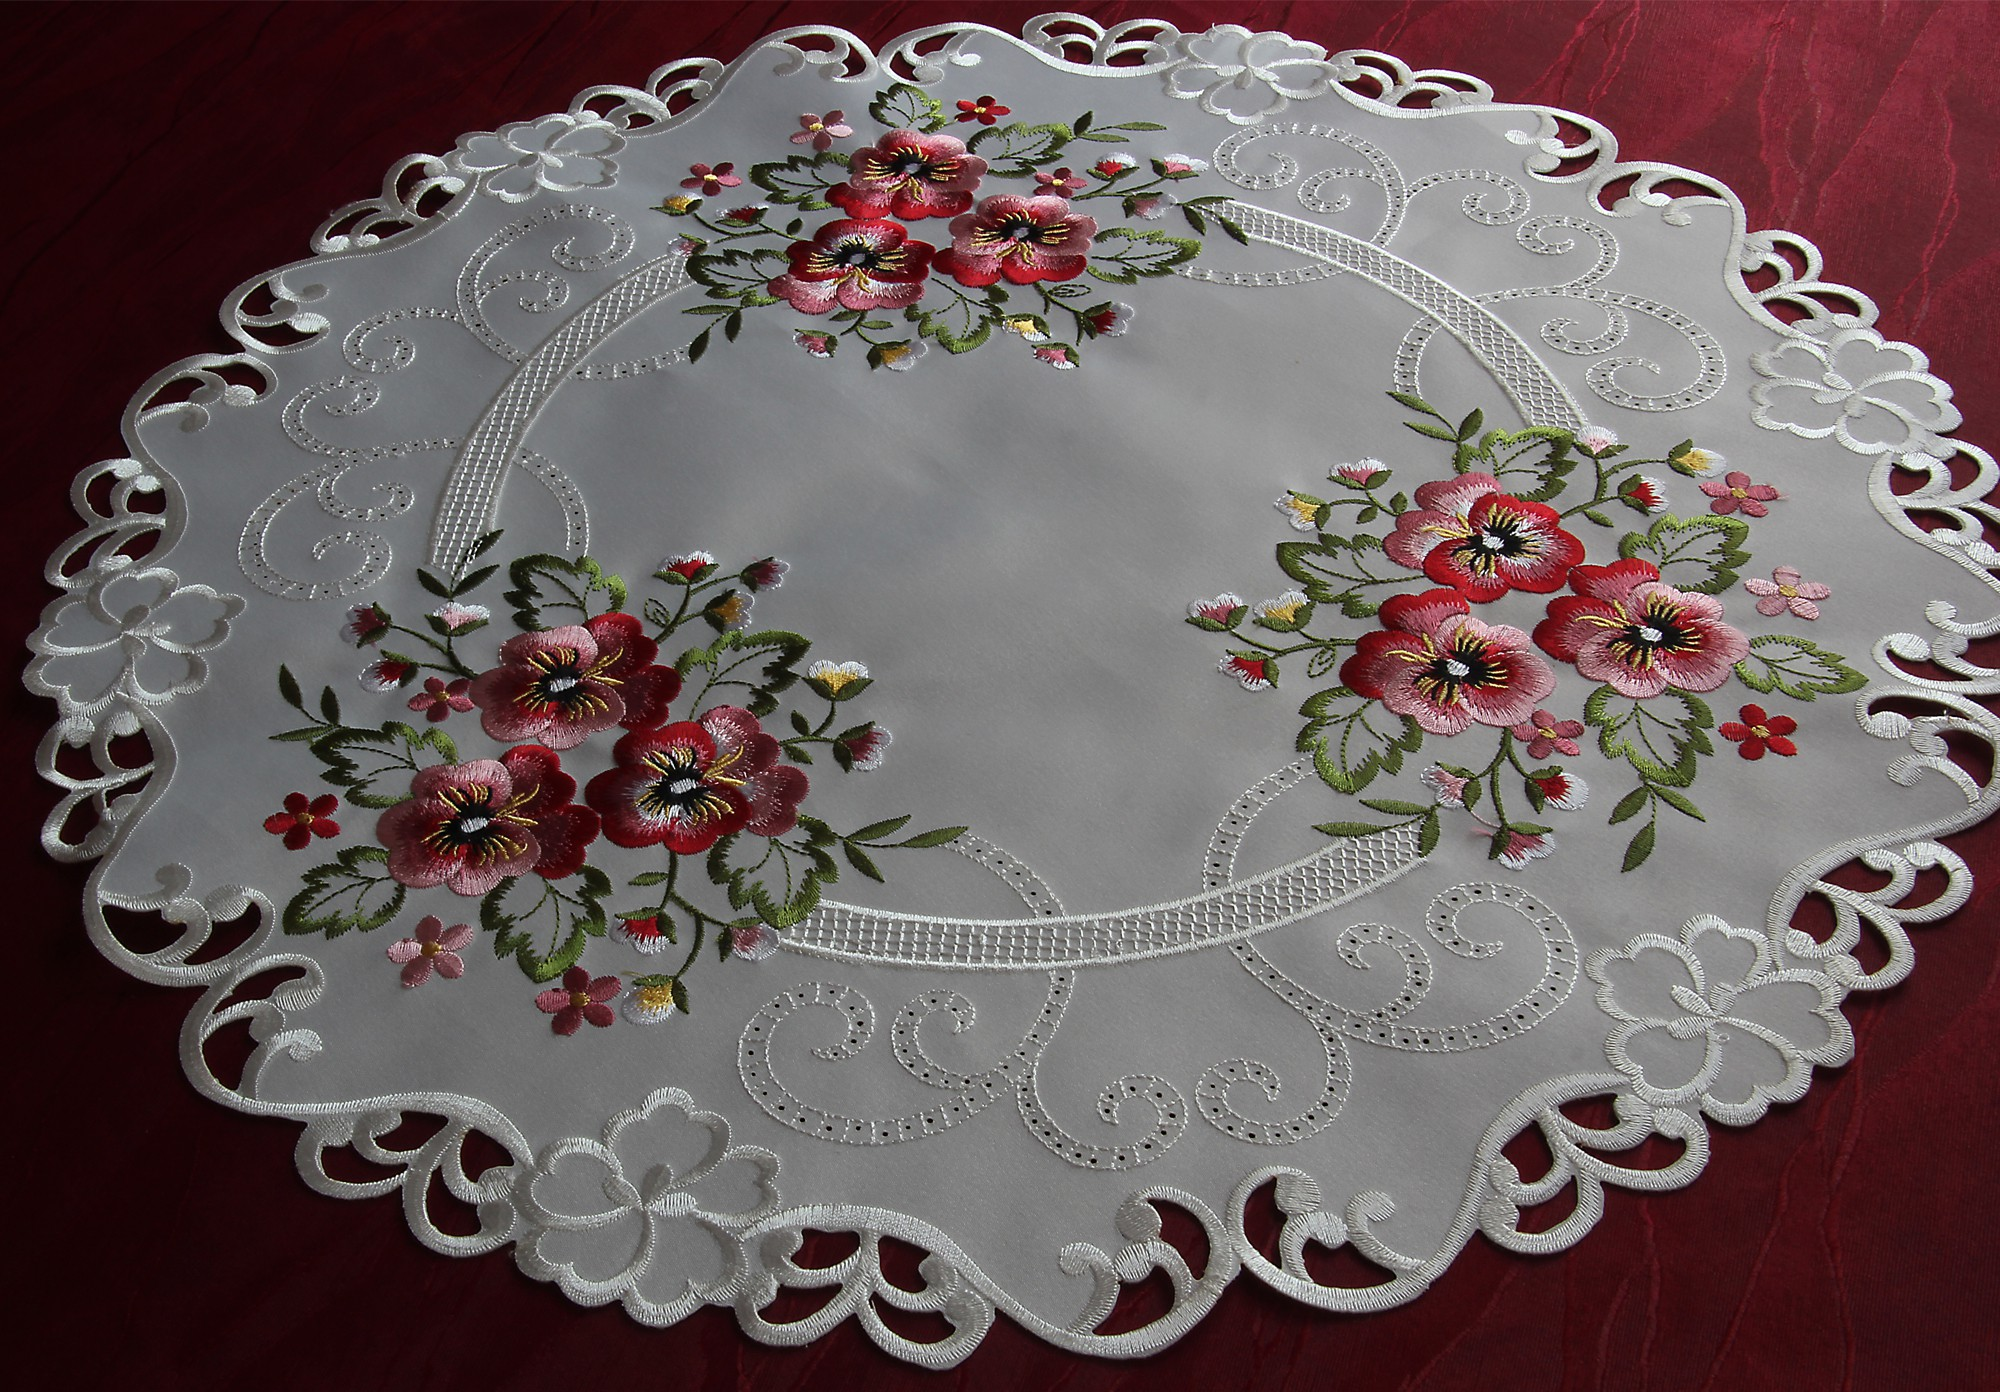 Pink Pansy Doily Table Runner Tablecloth Cream White Ivory